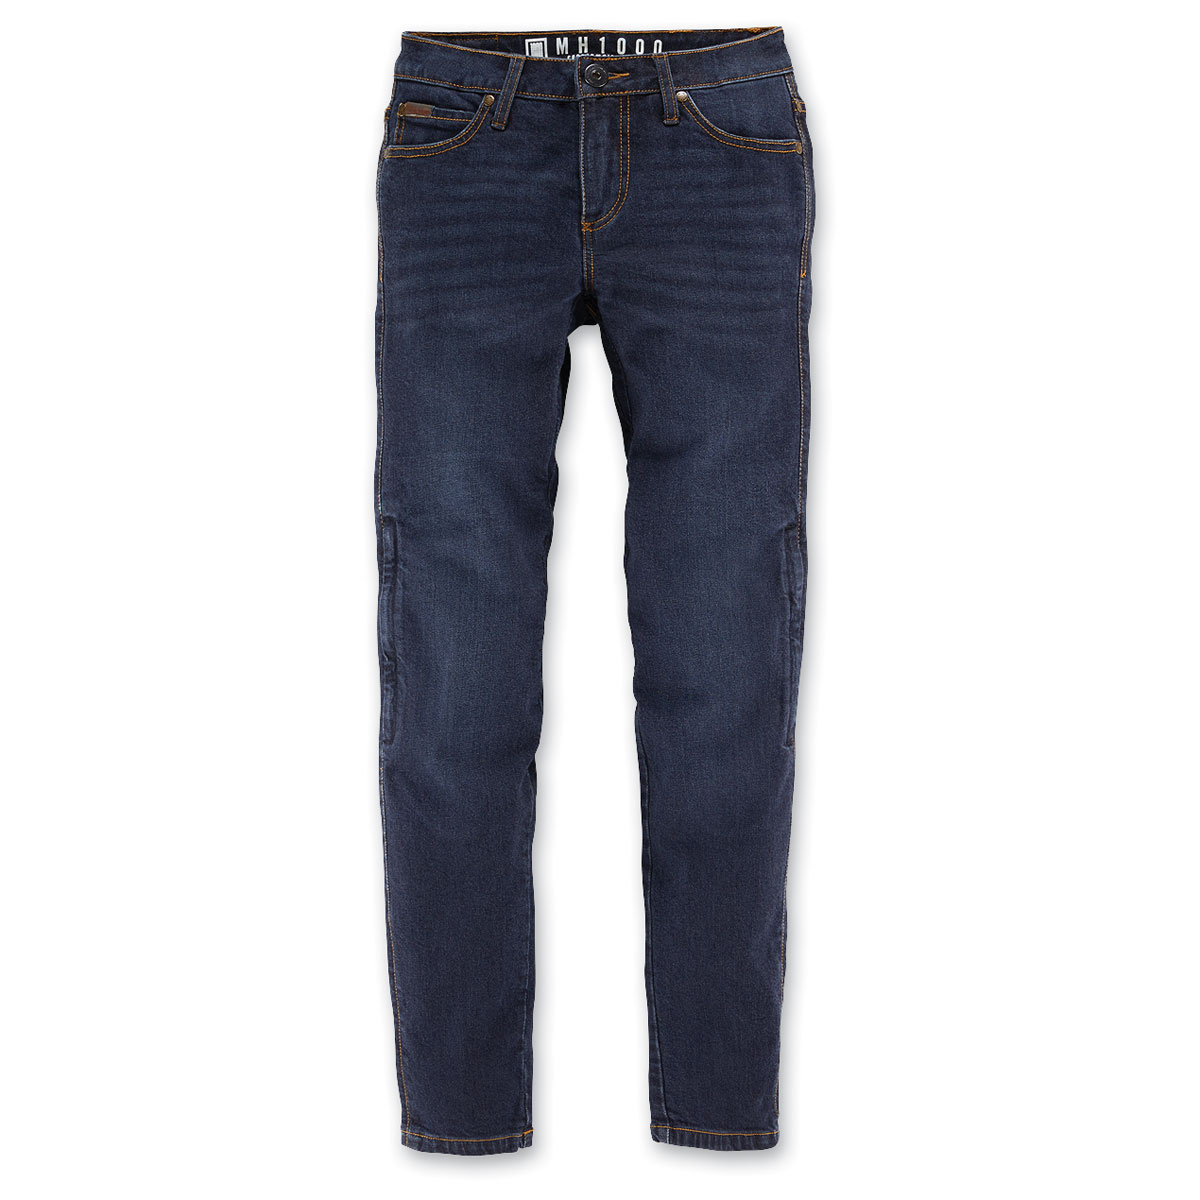 ICON One Thousand Women's MH1000 Blue Riding Jeans